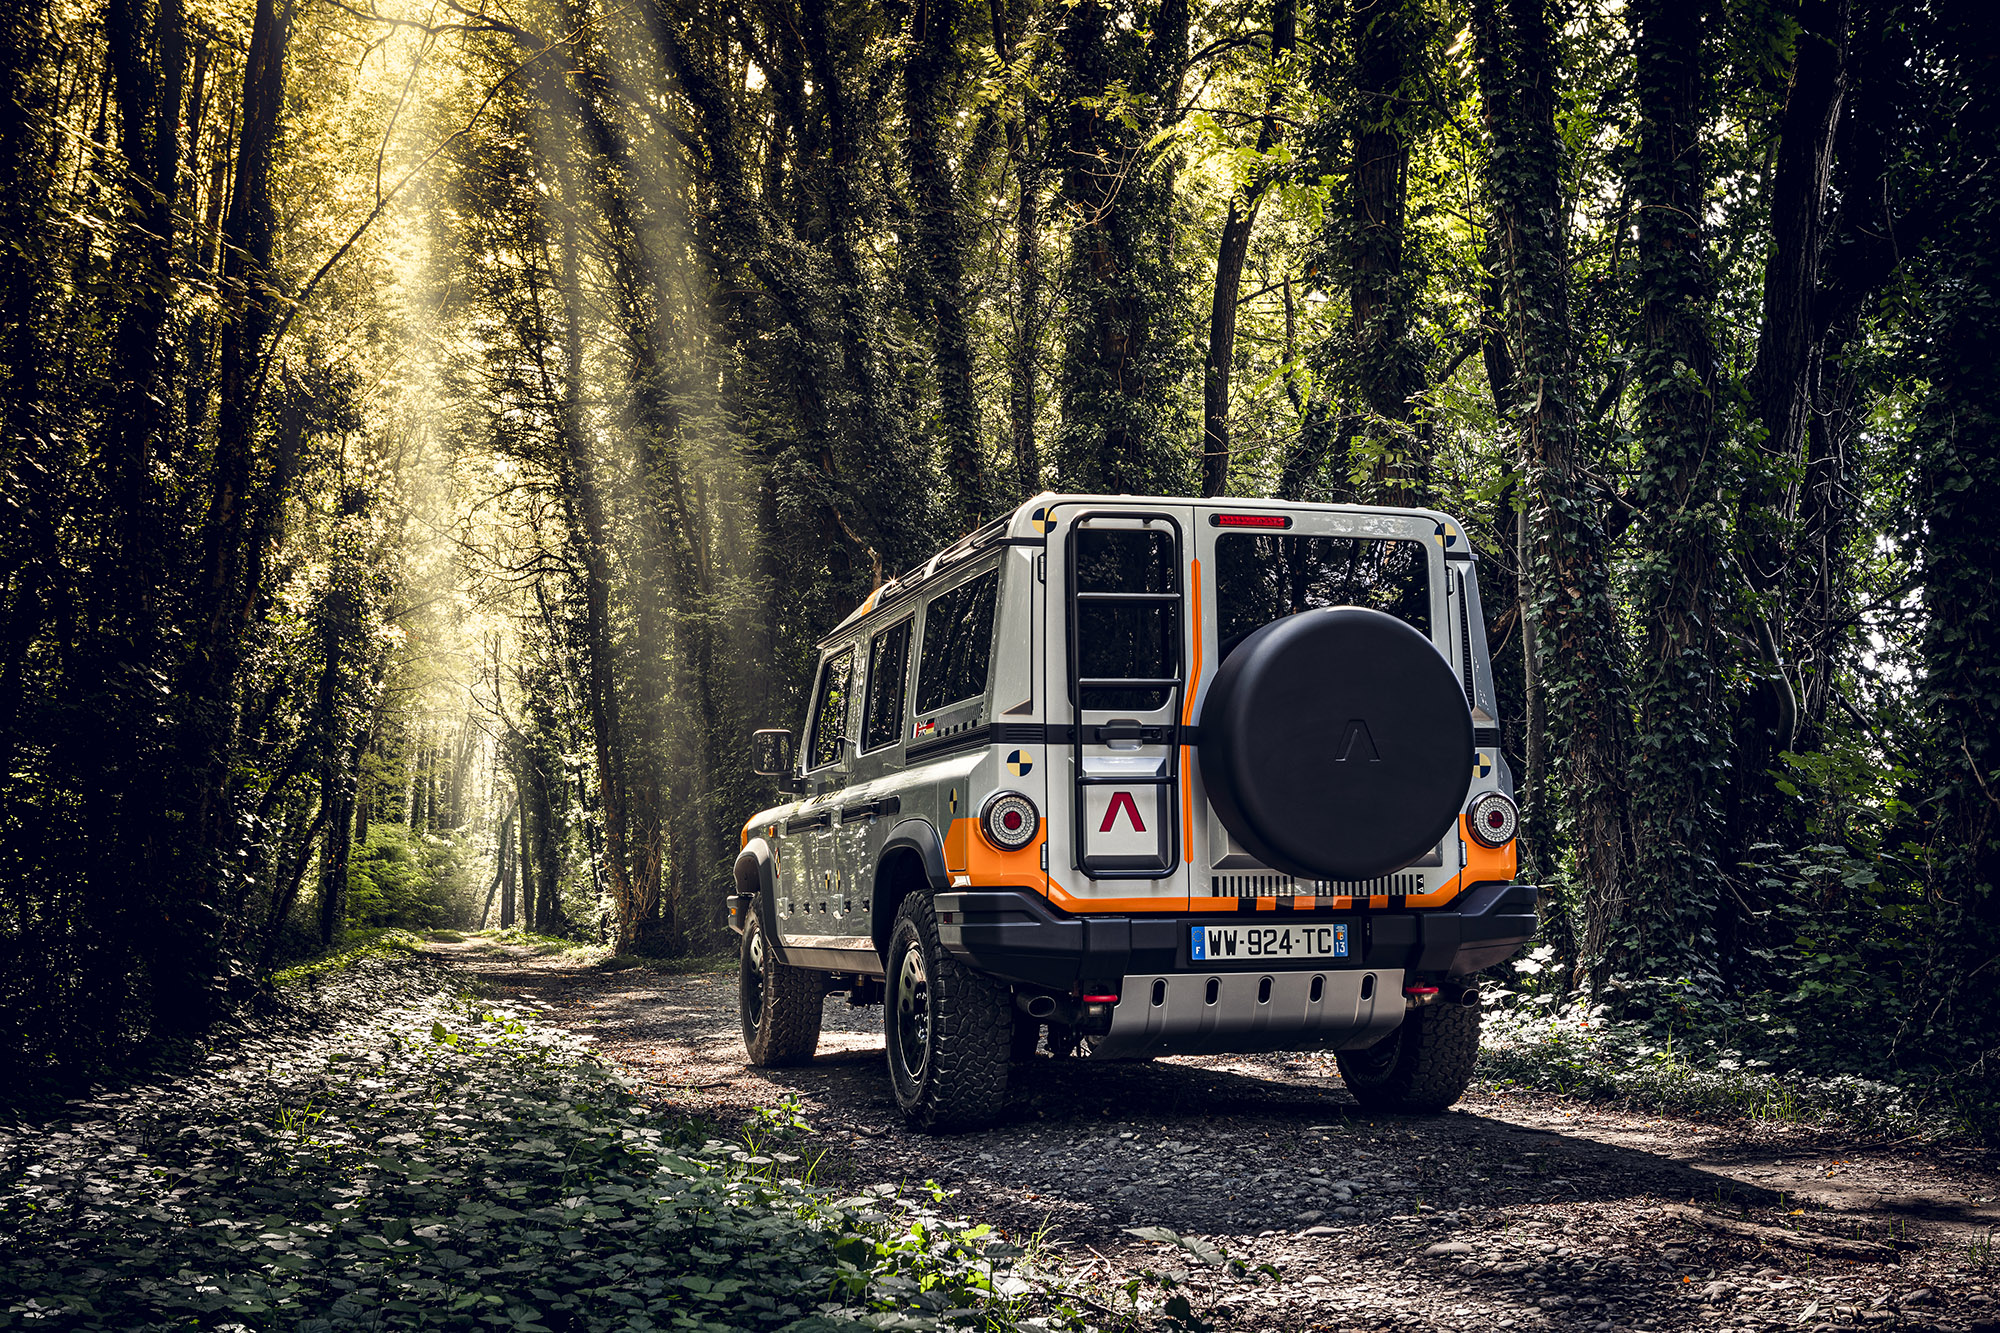 The orange and silver INEOS Grenadier prototype boasts a full-size spare, OE ladder, and beefy off-road tires.